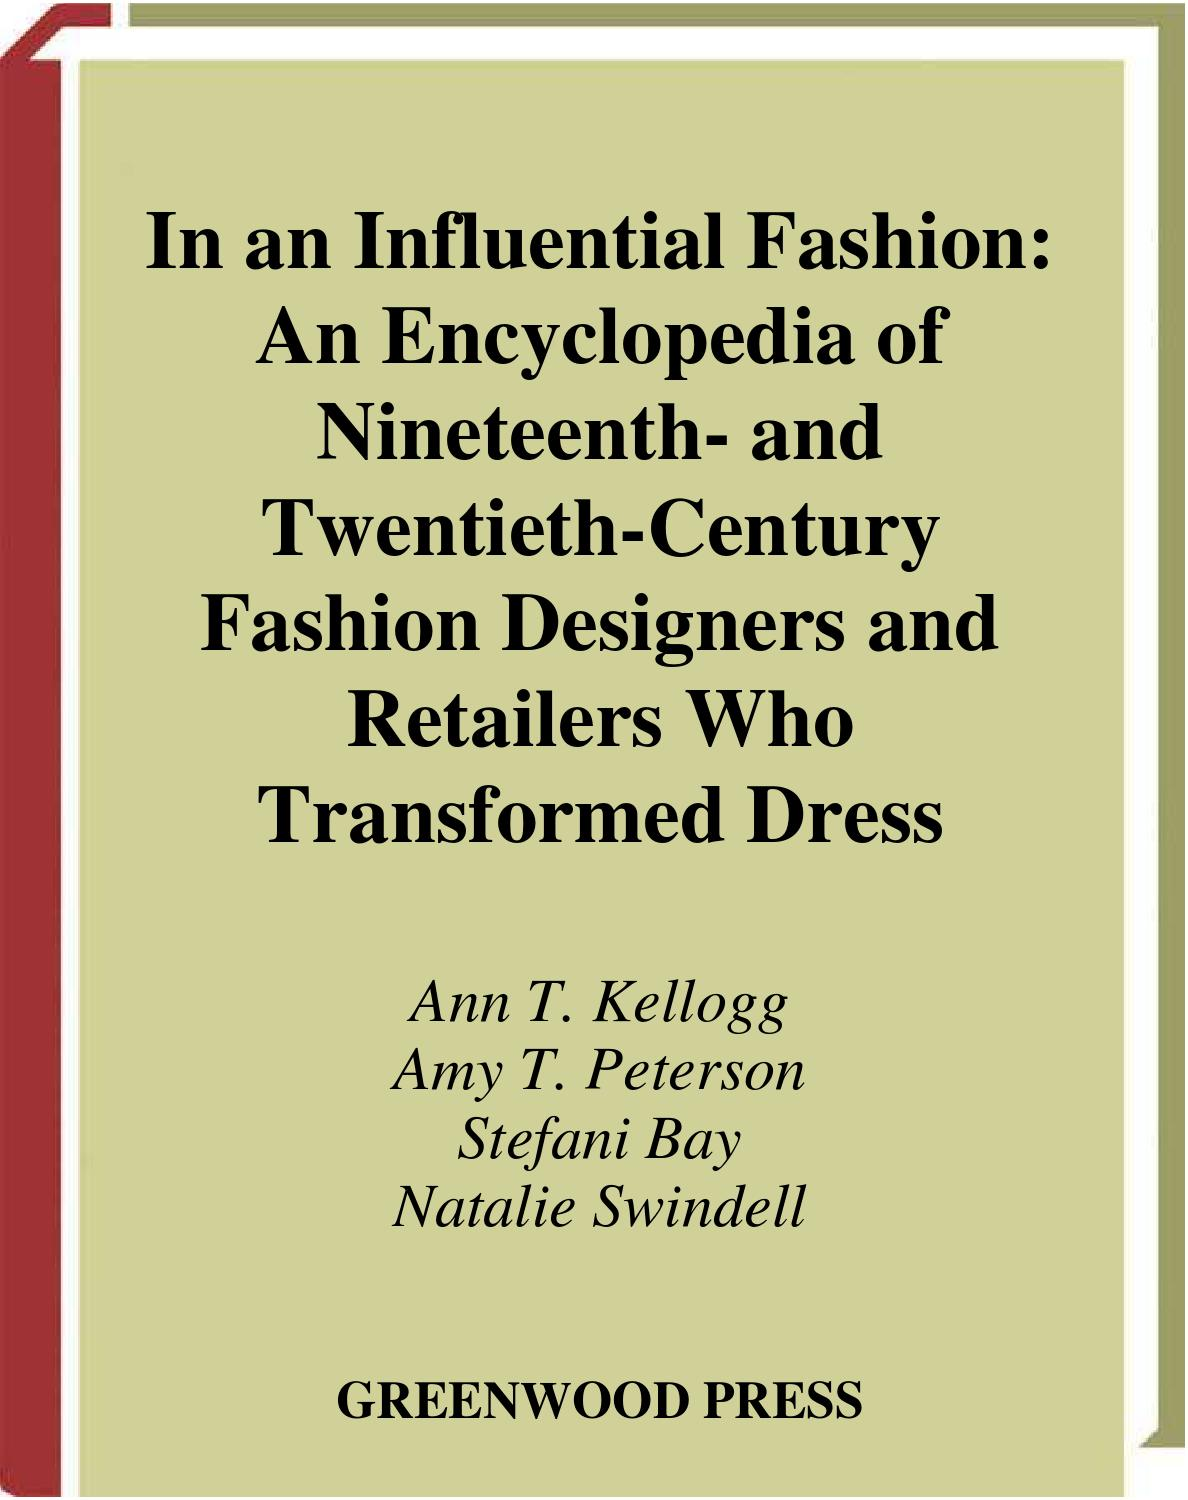 7a6bf4d830d Encyclopedia of 19th  20th century fashion designers   retailers by  nana2000 - issuu